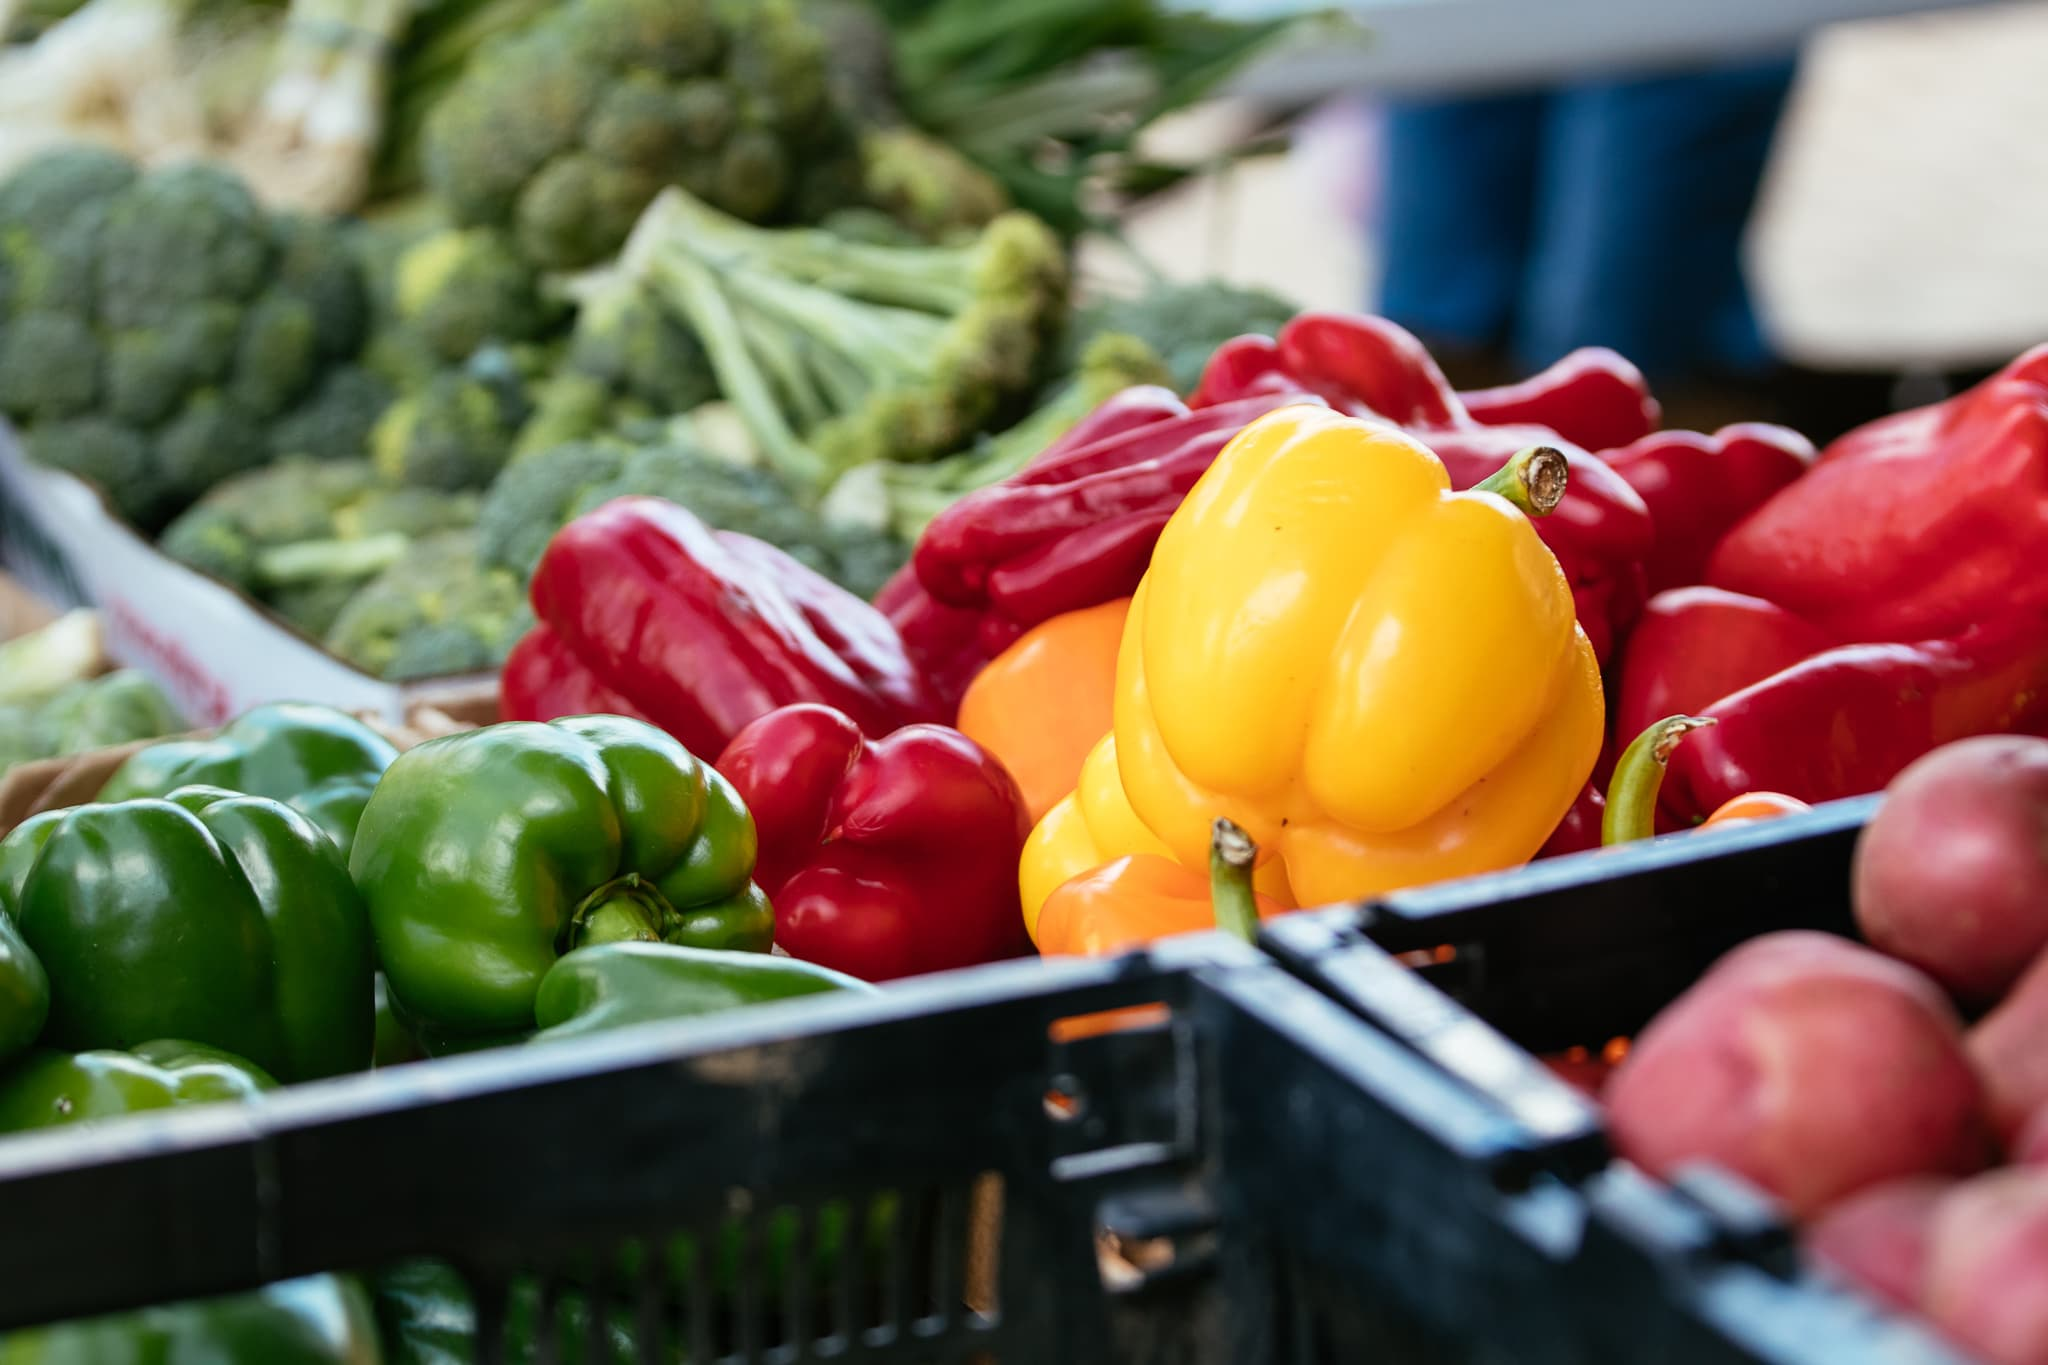 Farmers Market, fresh vegetables, colorful bell peppers and broccoli